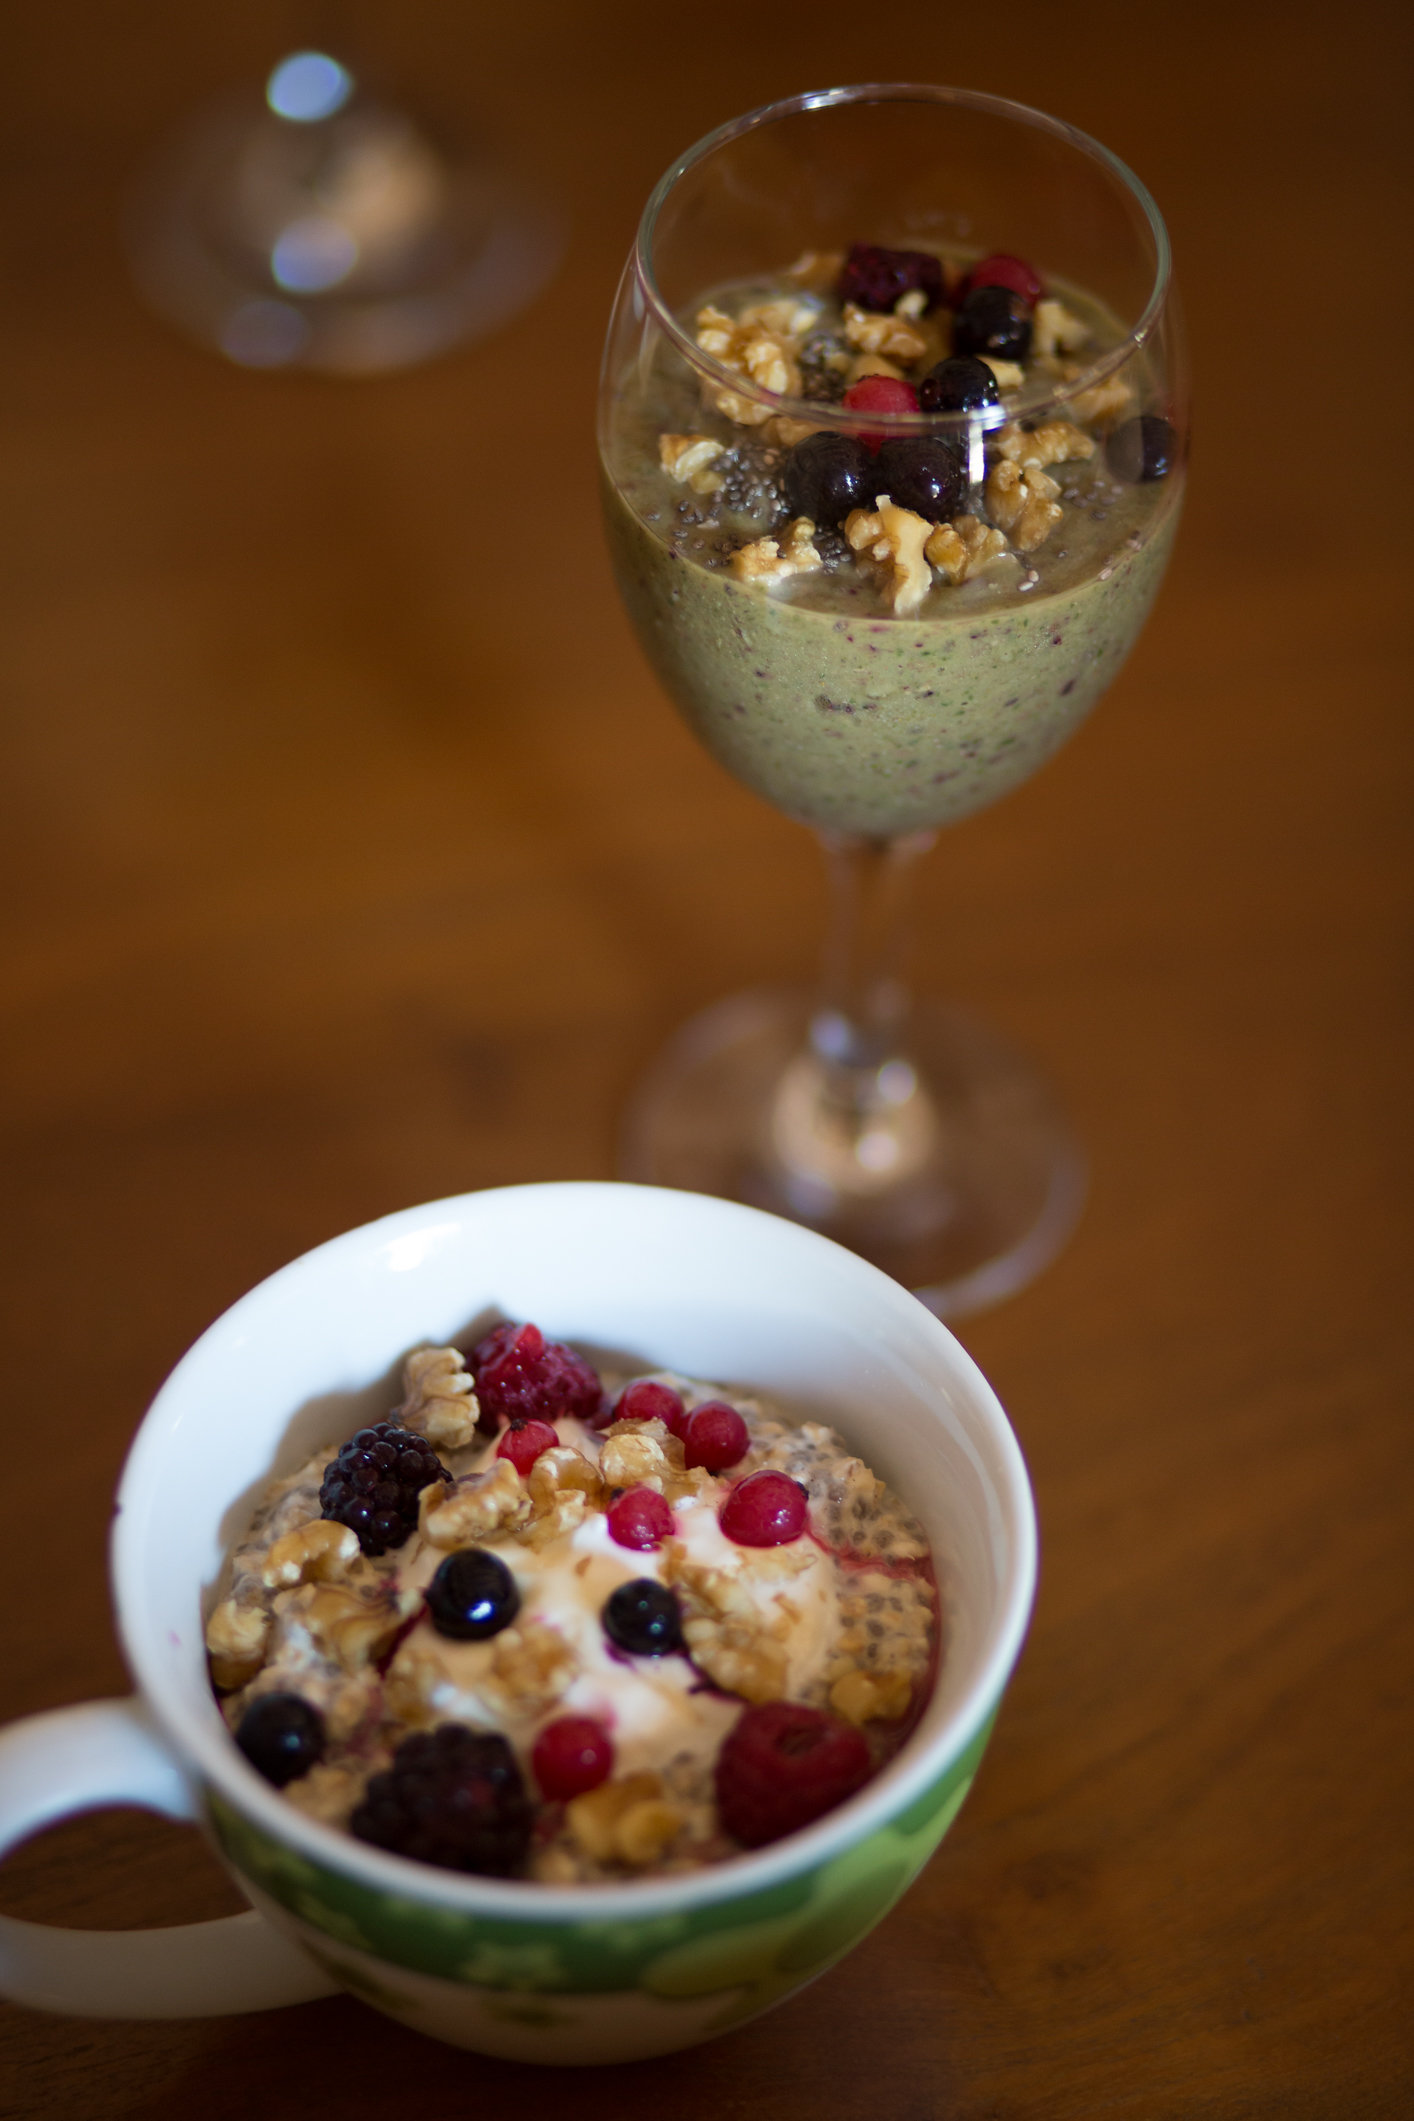 Breakfast smoothie and overnight oats